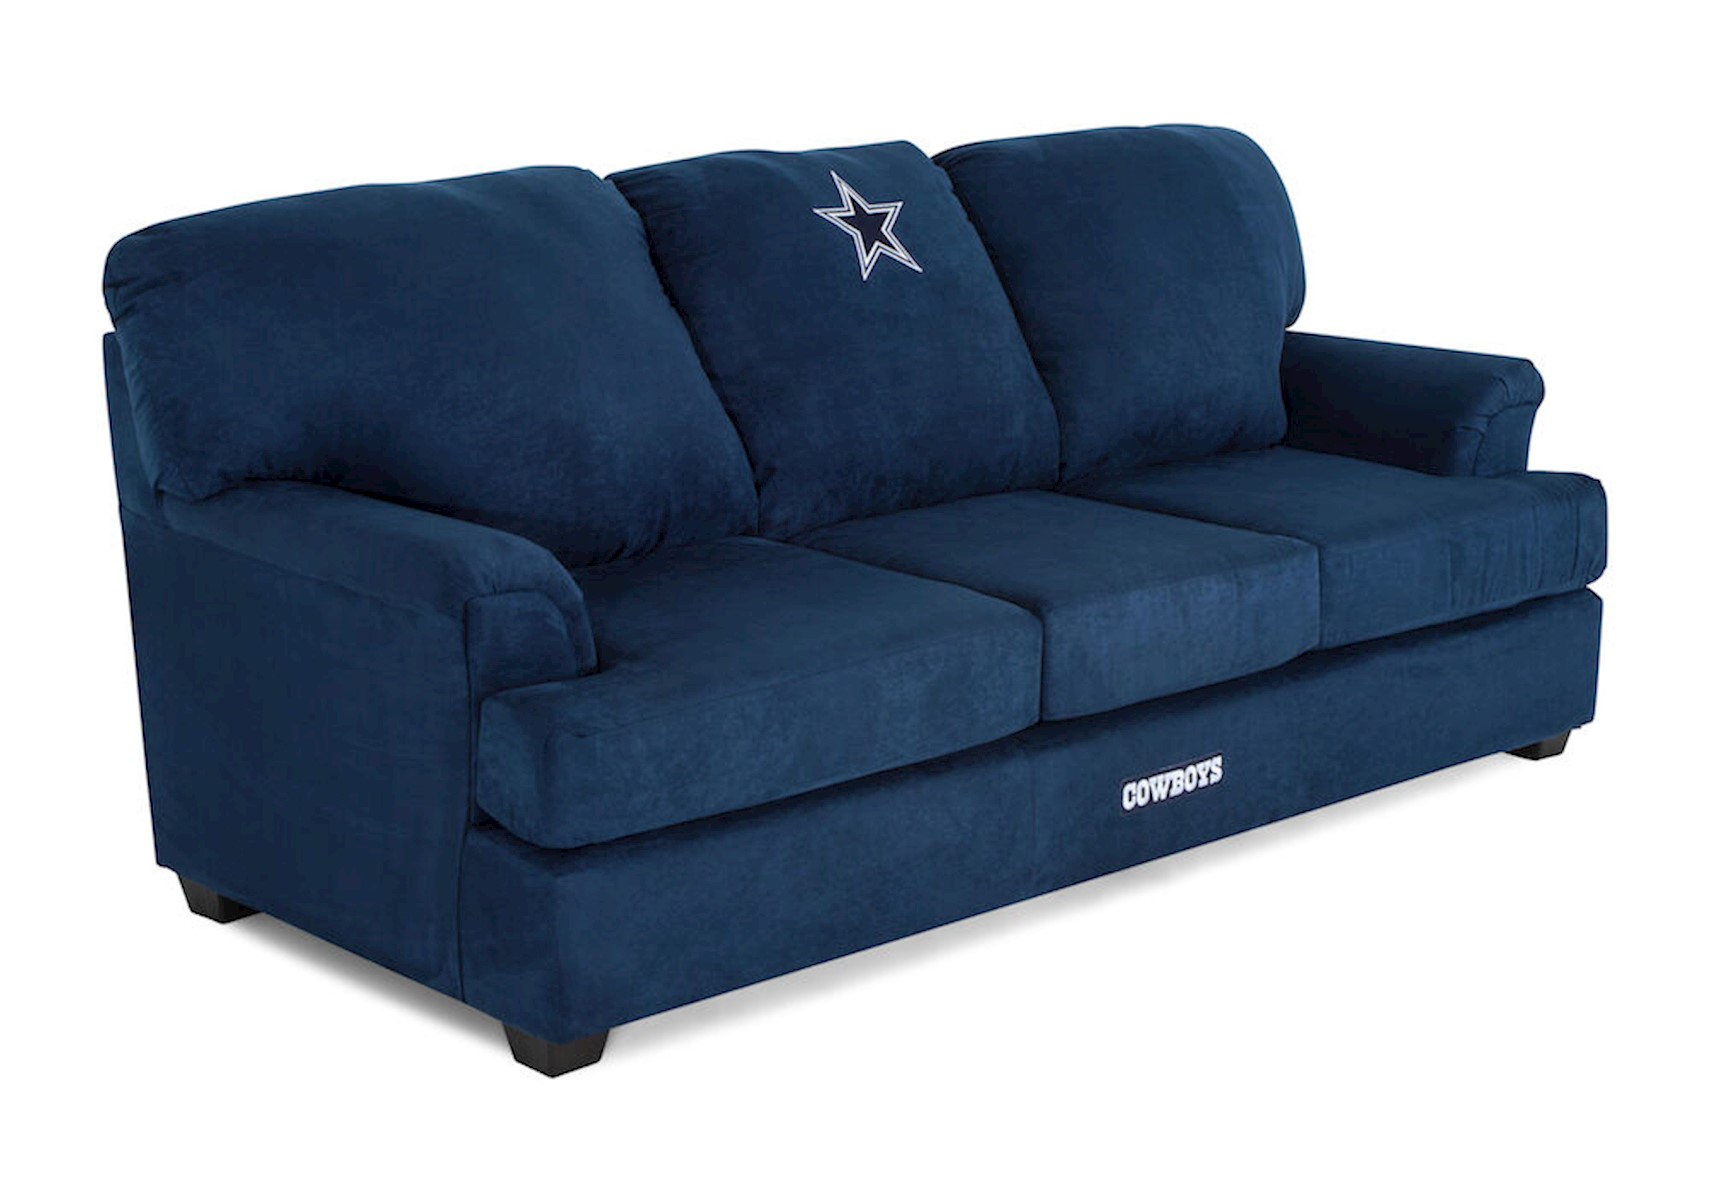 dallas cowboys chair cover beach chairs with shade sofa furniture cowboy